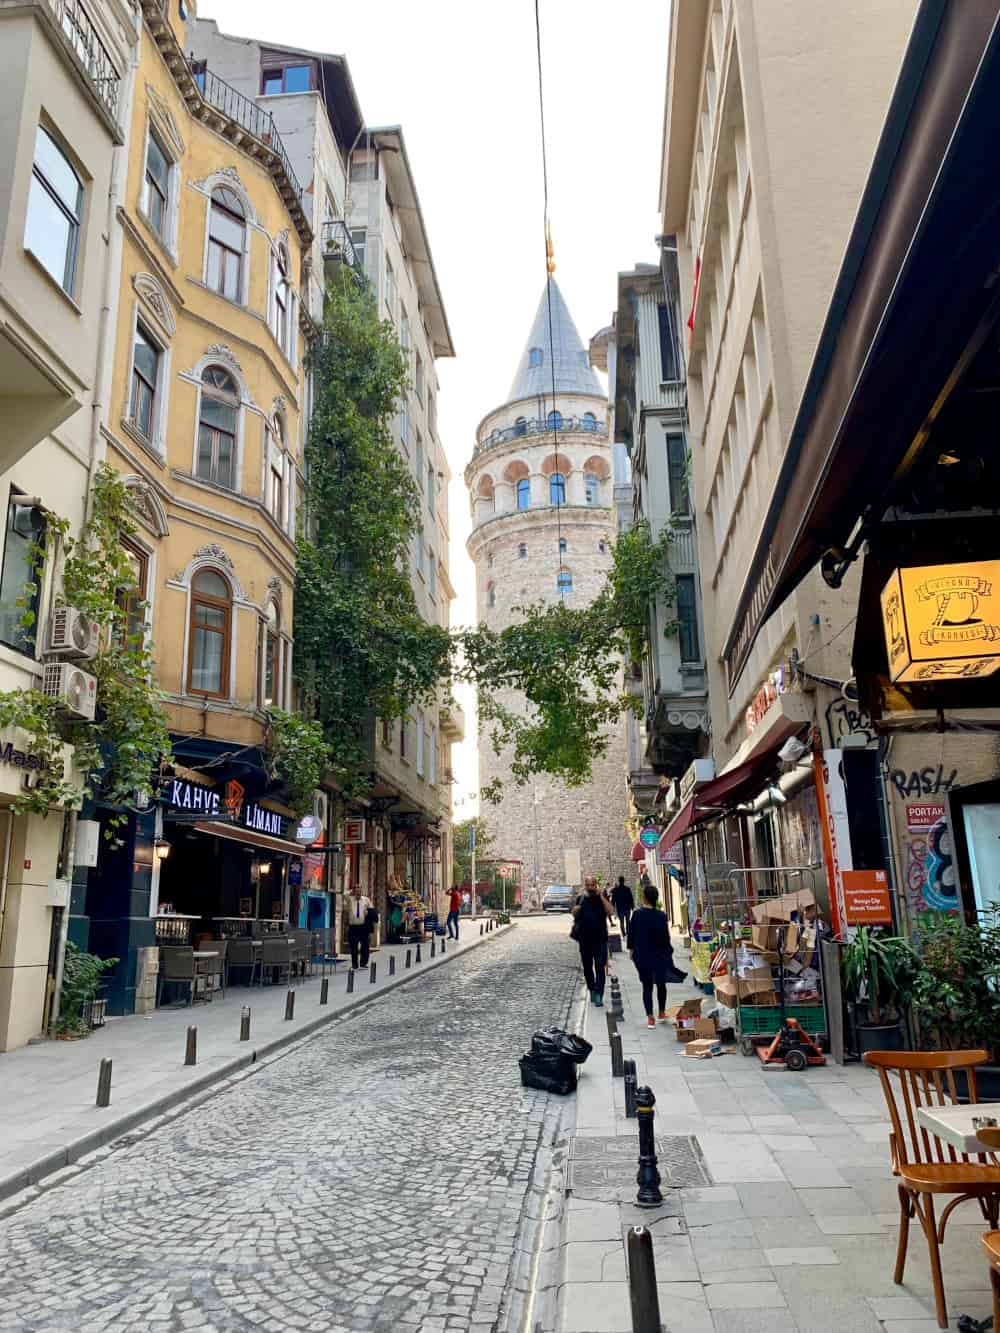 Planning a 7-Day (or 10-Day) Turkey Itinerary   I did an epic 35th birthday trip to Turkey, and share detailed info on how to plan your own 7-day Turkey itinerary...what to do with a week in Turkey, where to go, 10 days in Turkey, Turkey itinerary ideas. 7 days in Turkey will make you fall in love! #turkey #itinerary #traveltips